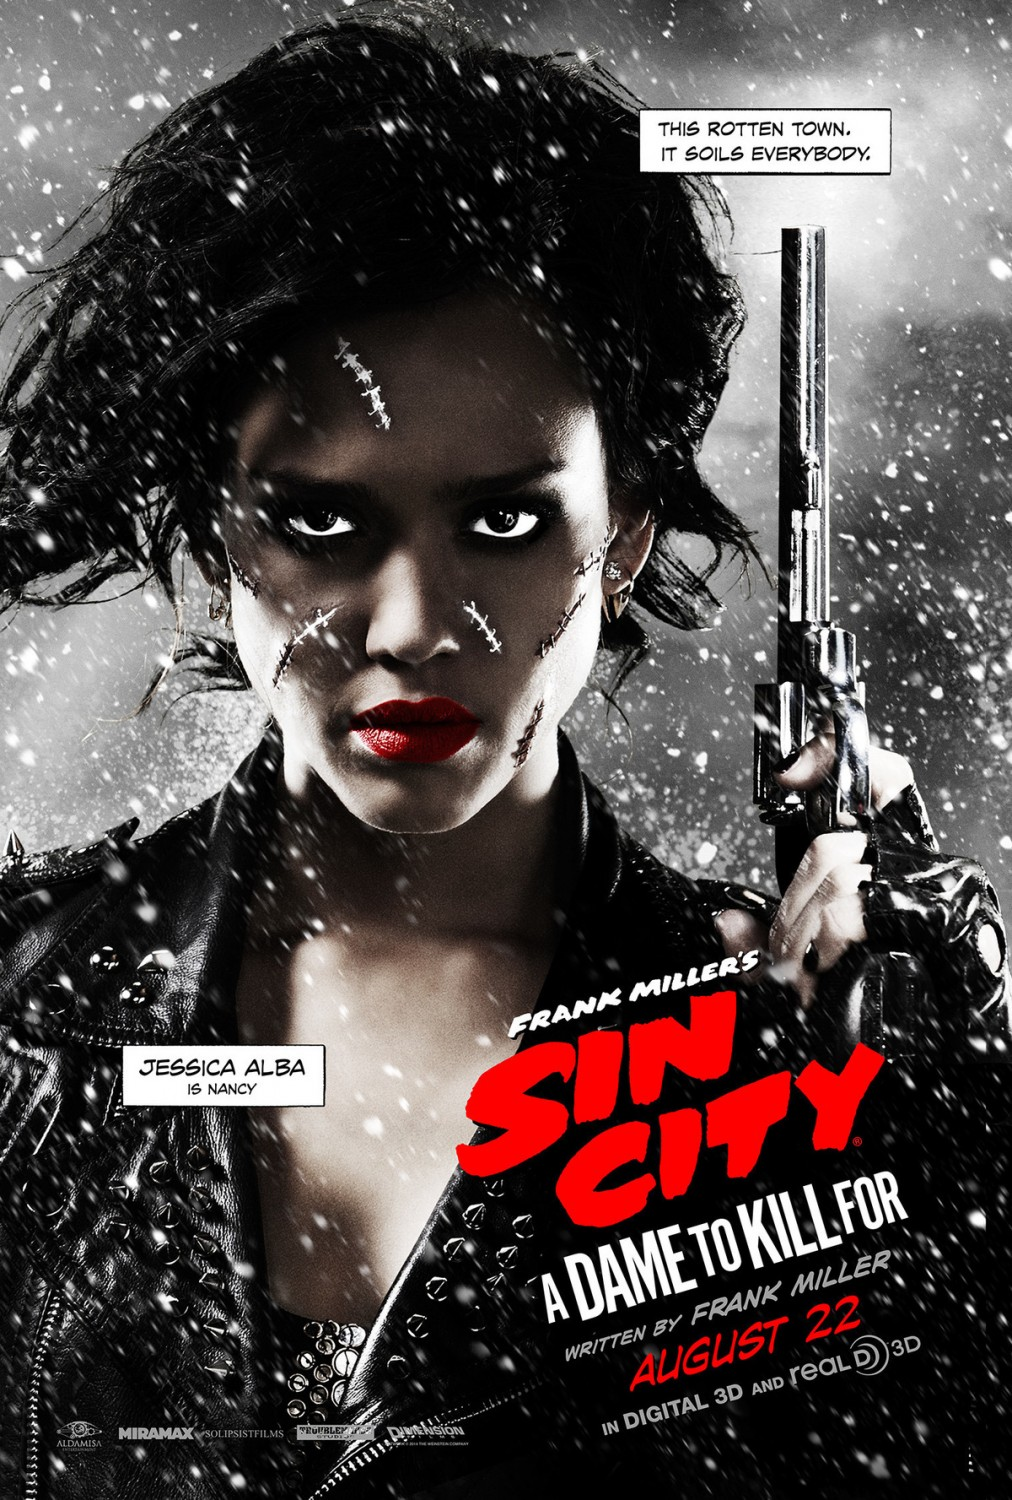 Jessica Alba is Nancy in Sin City 2 (Poster)